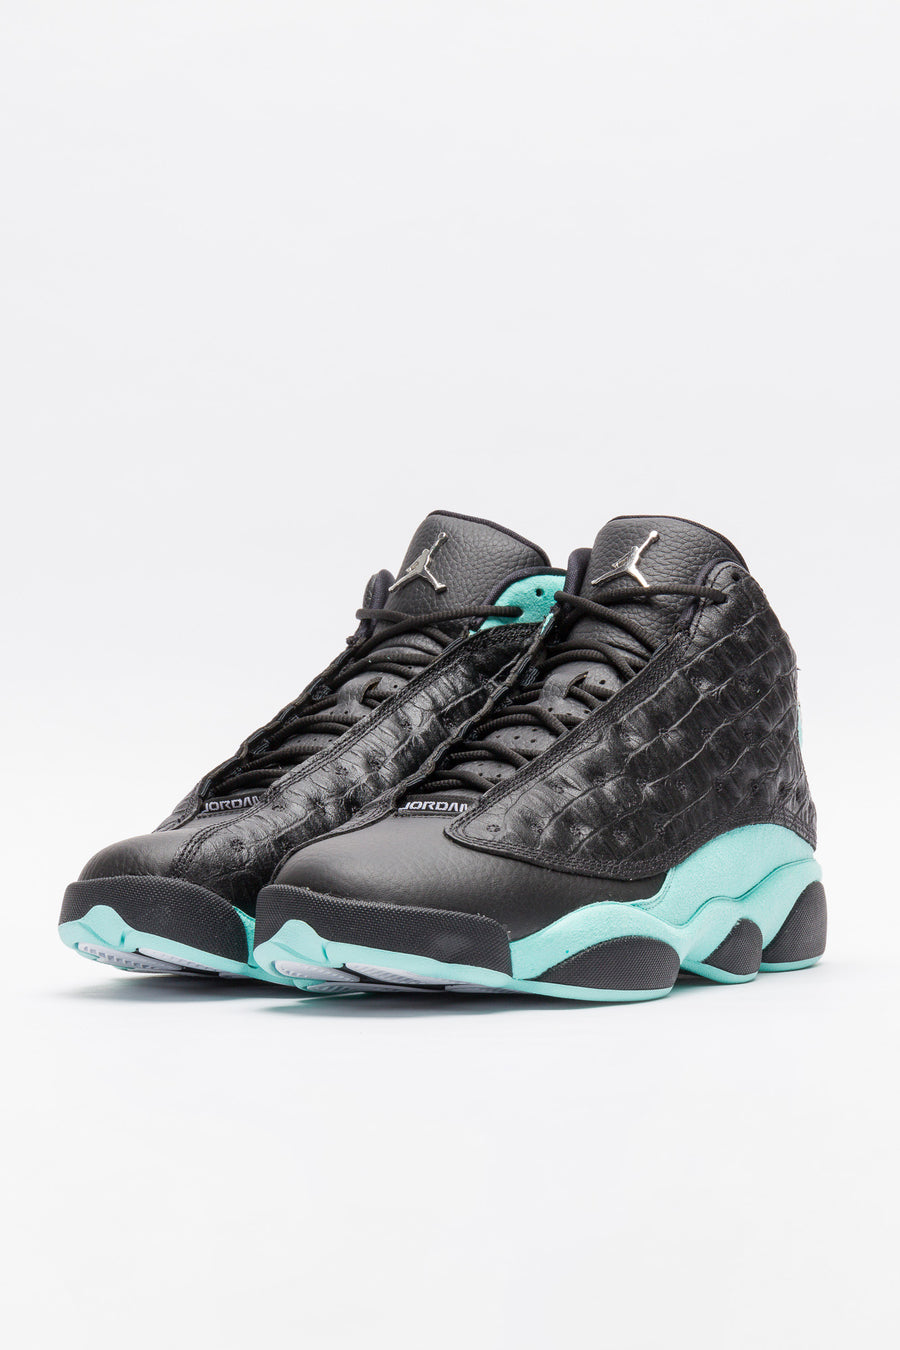 Jordan Air Jordan 13 Retro in Black/Island Green - Notre